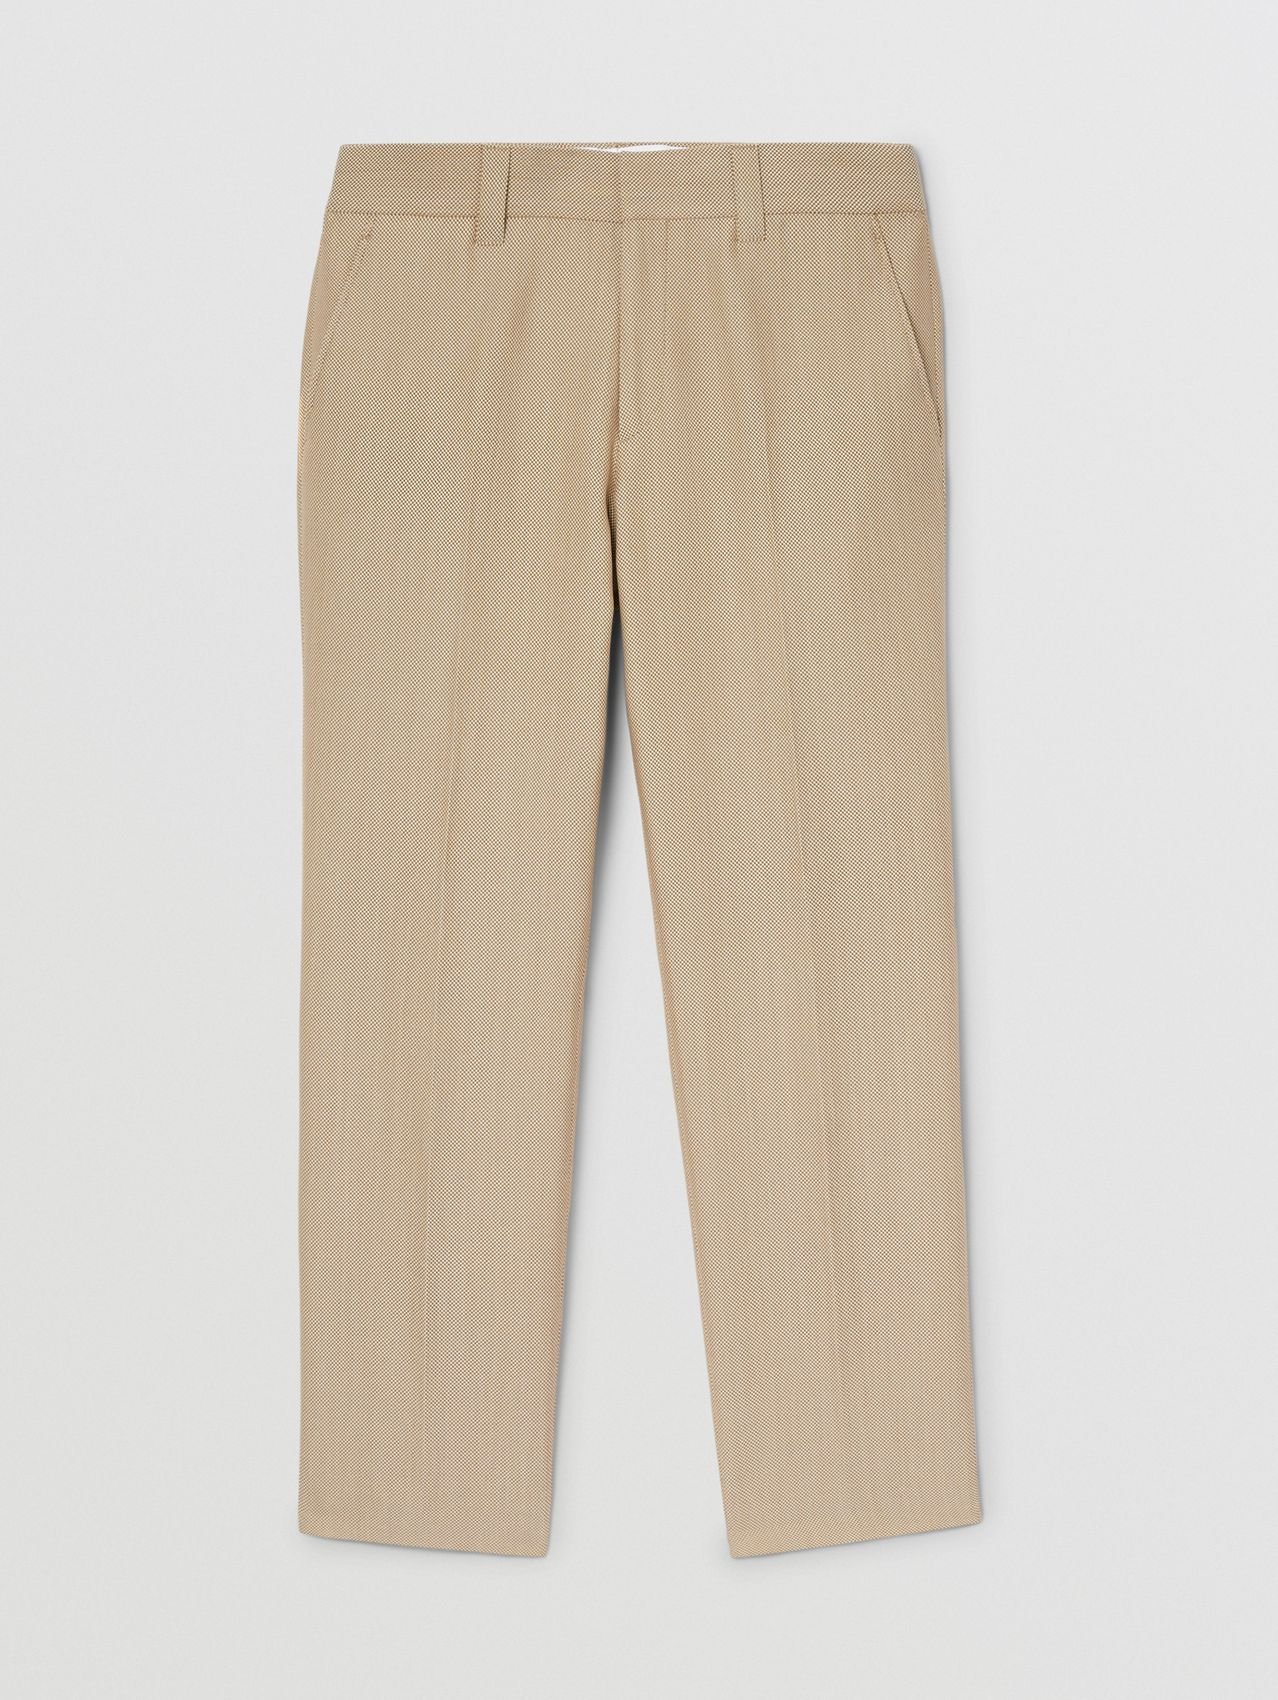 Technical Wool Canvas Cropped Tailored Trousers in Dusty Sand